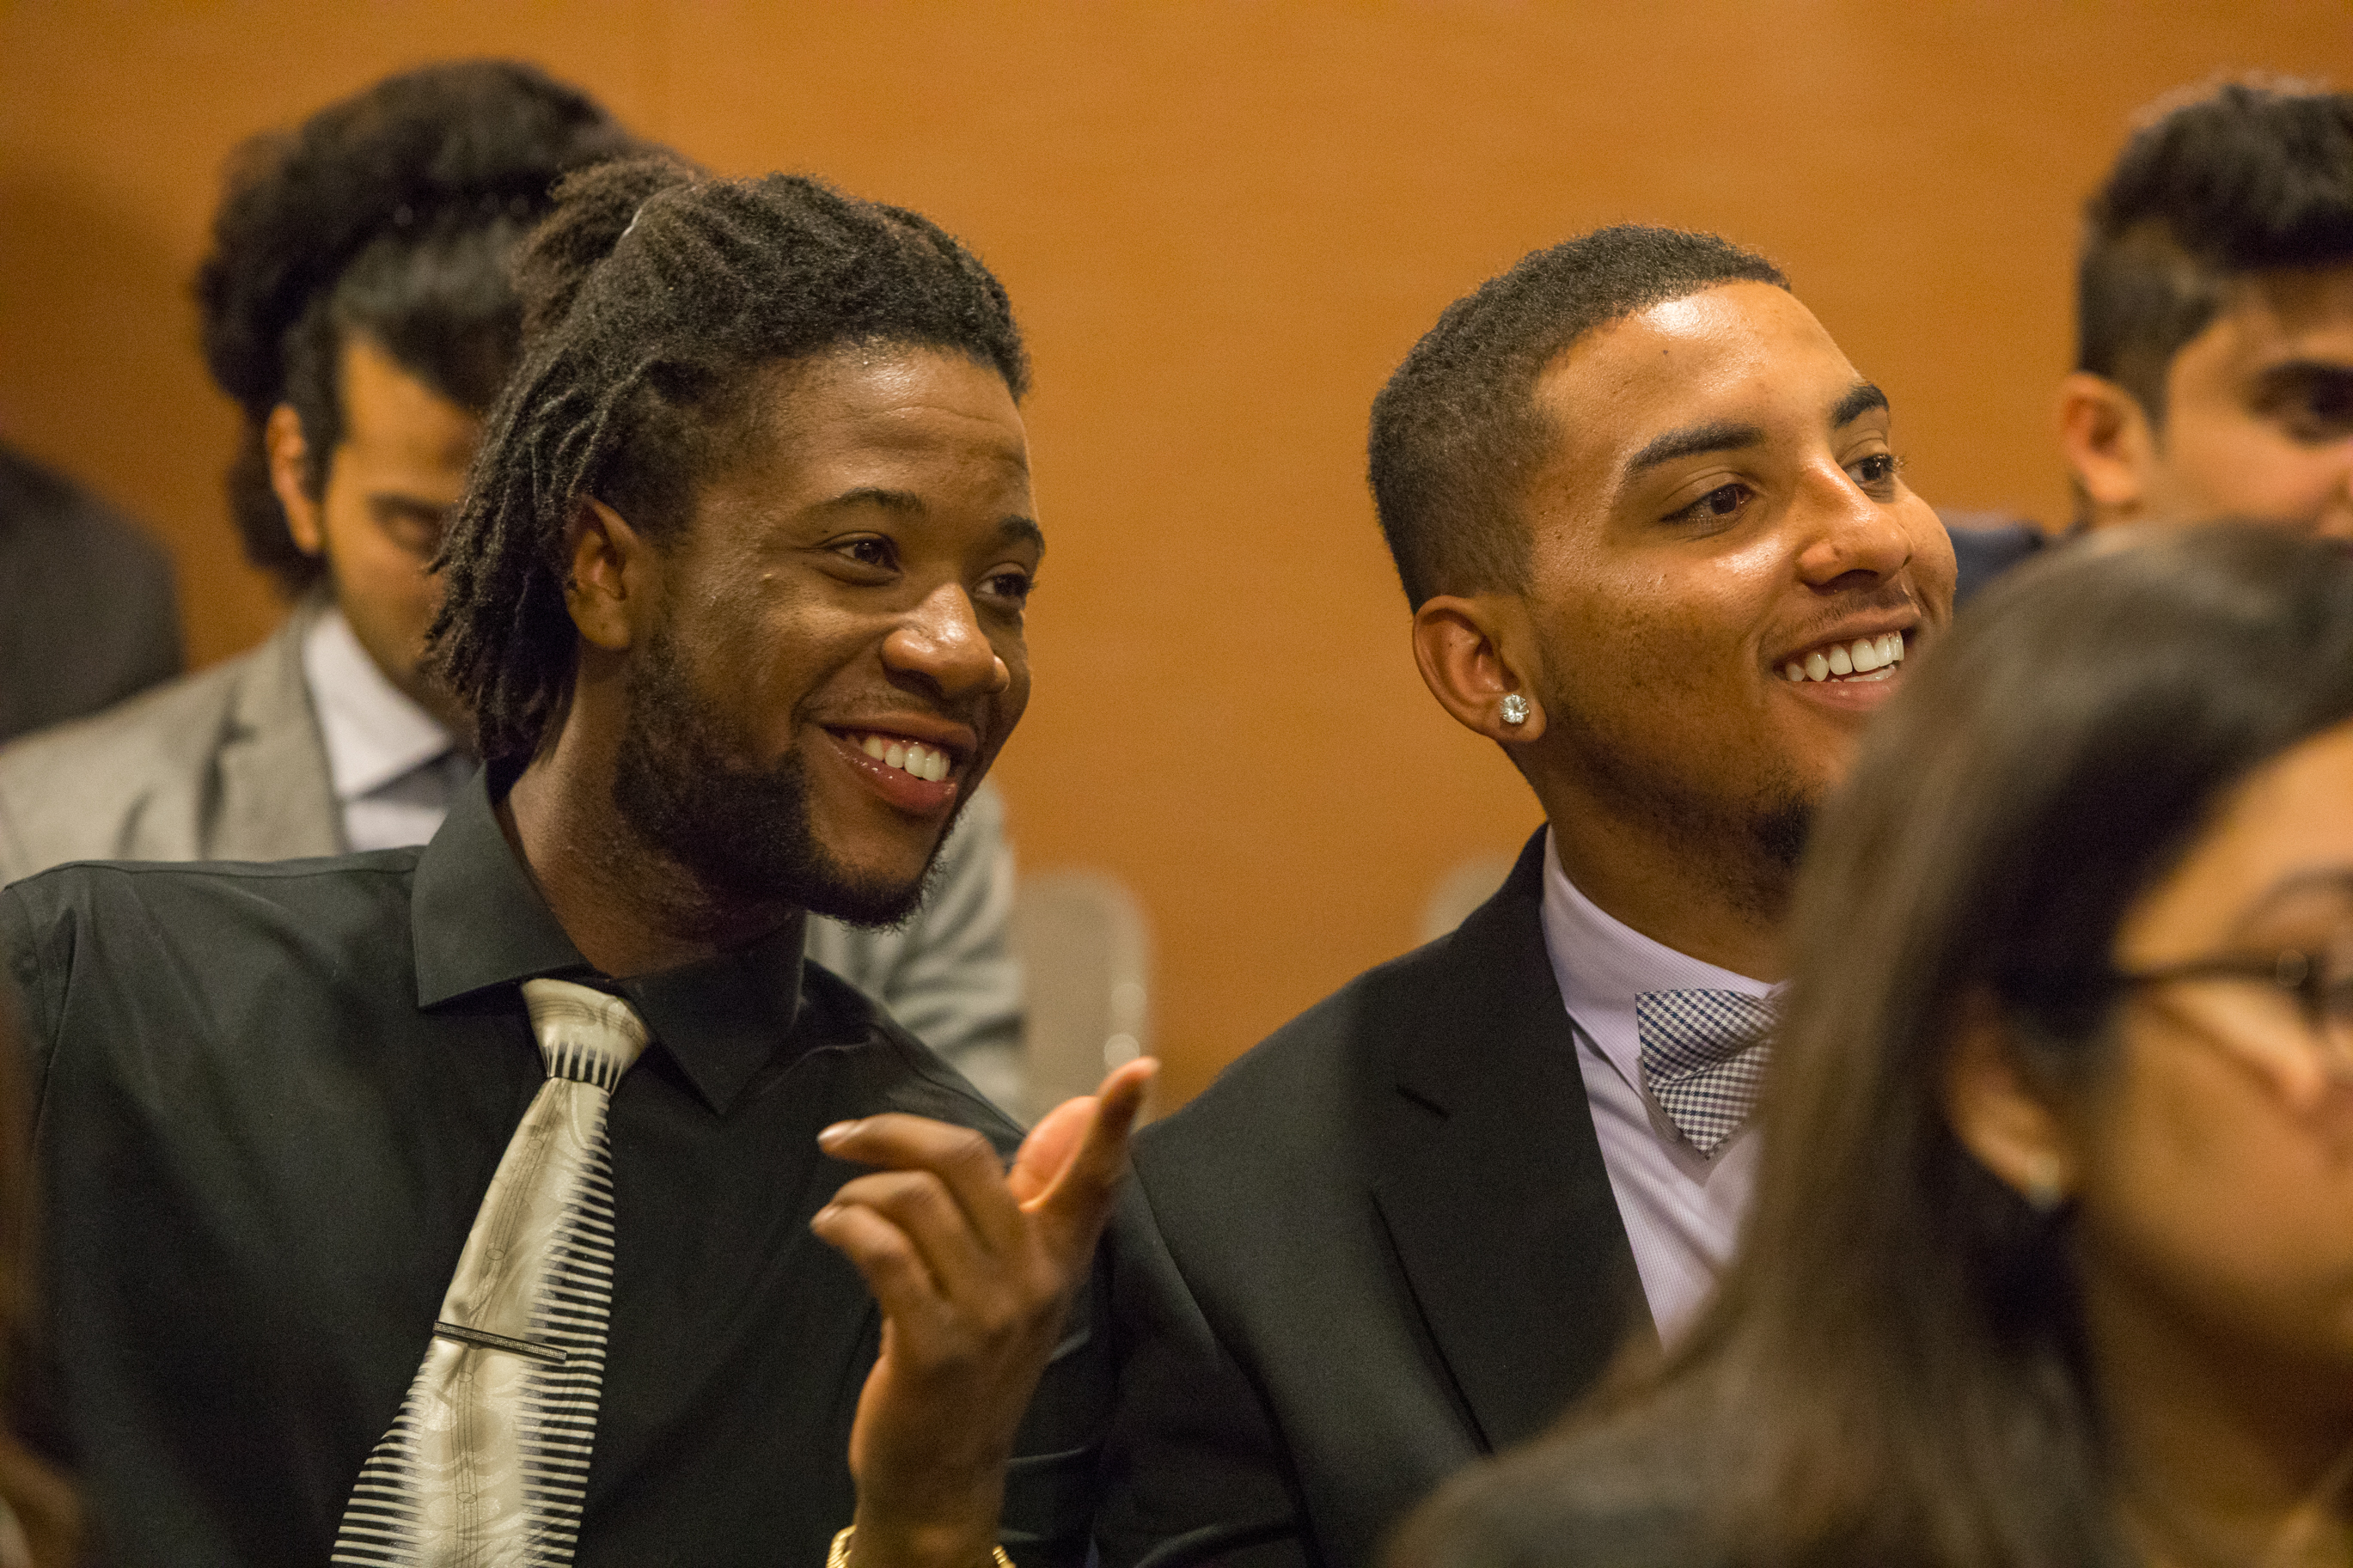 Kamari Hunter on the left, during the Race & the American Presidency SMLS event